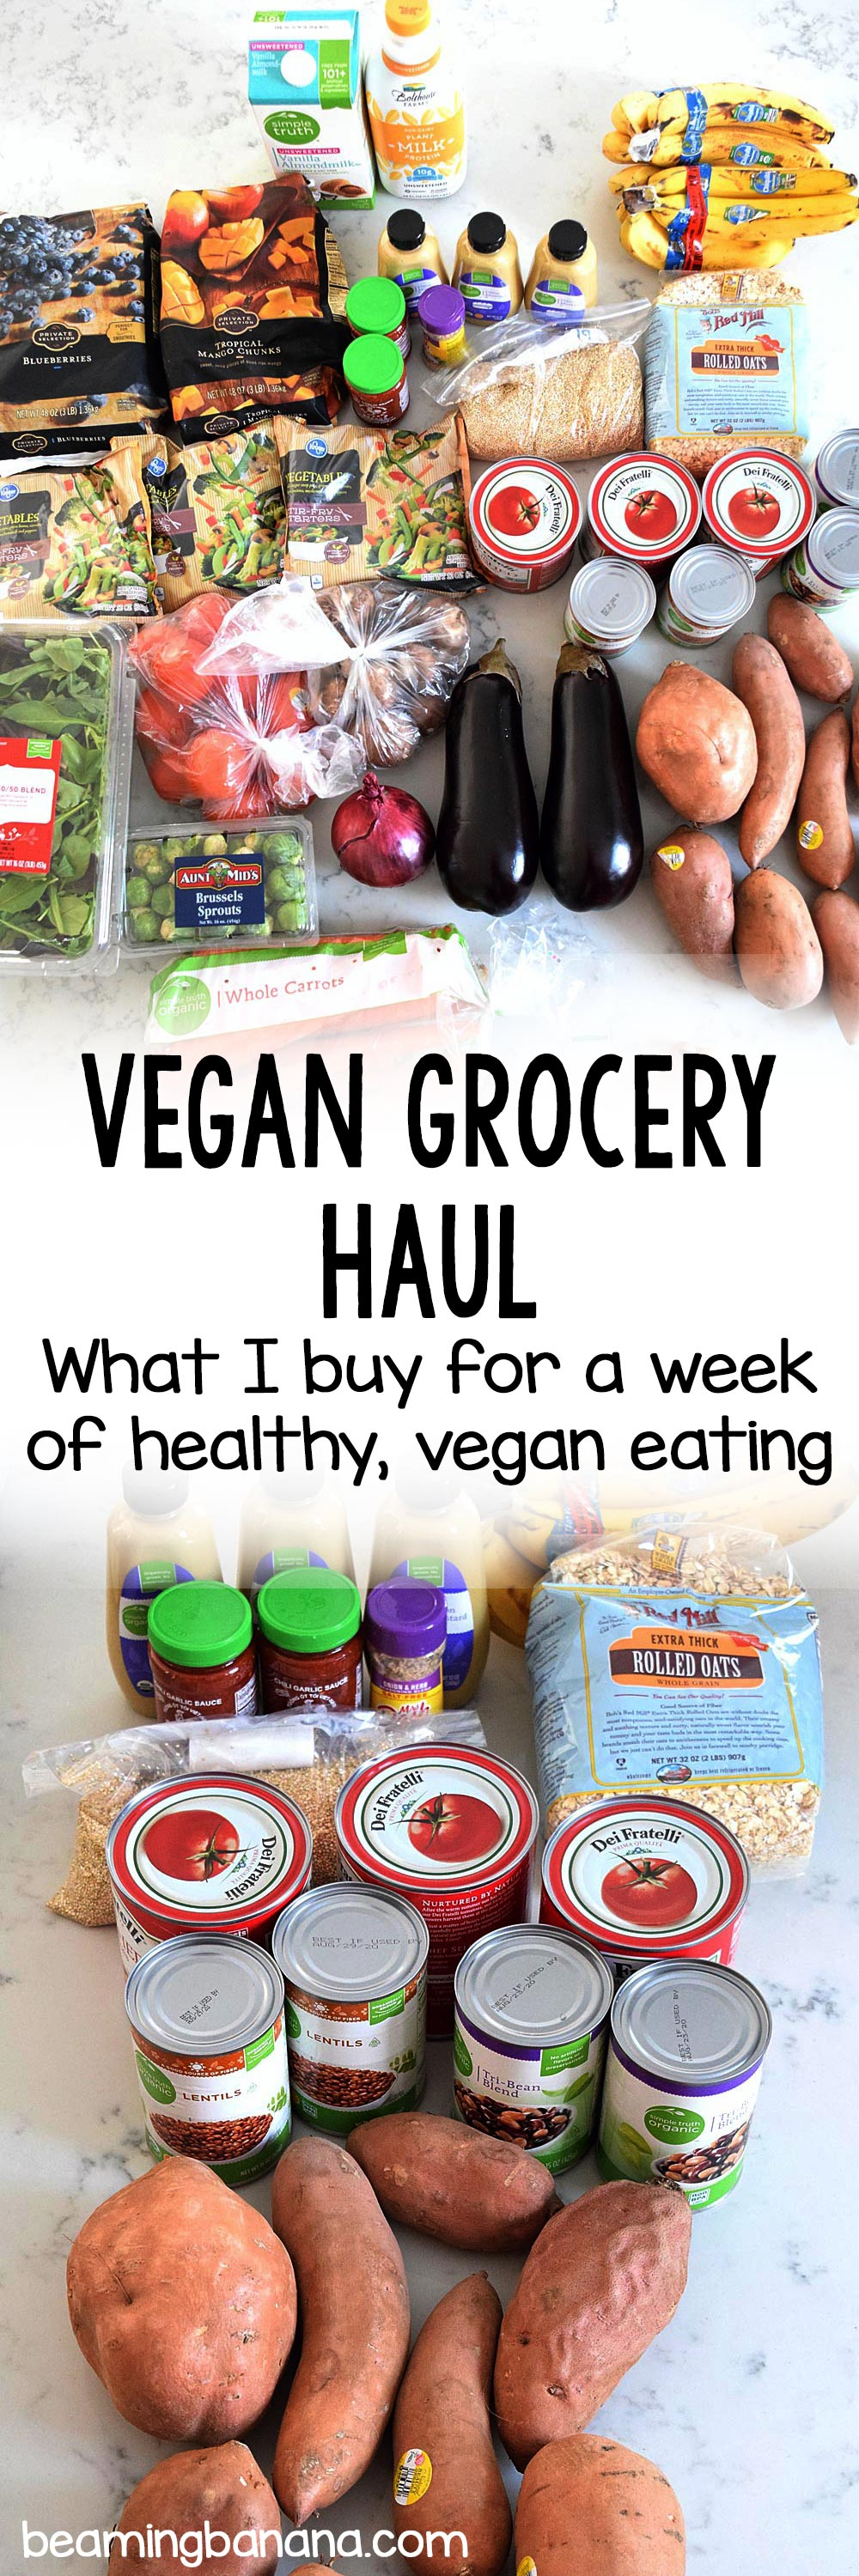 Vegan Grocery Haul - Sweet Vegan Sara